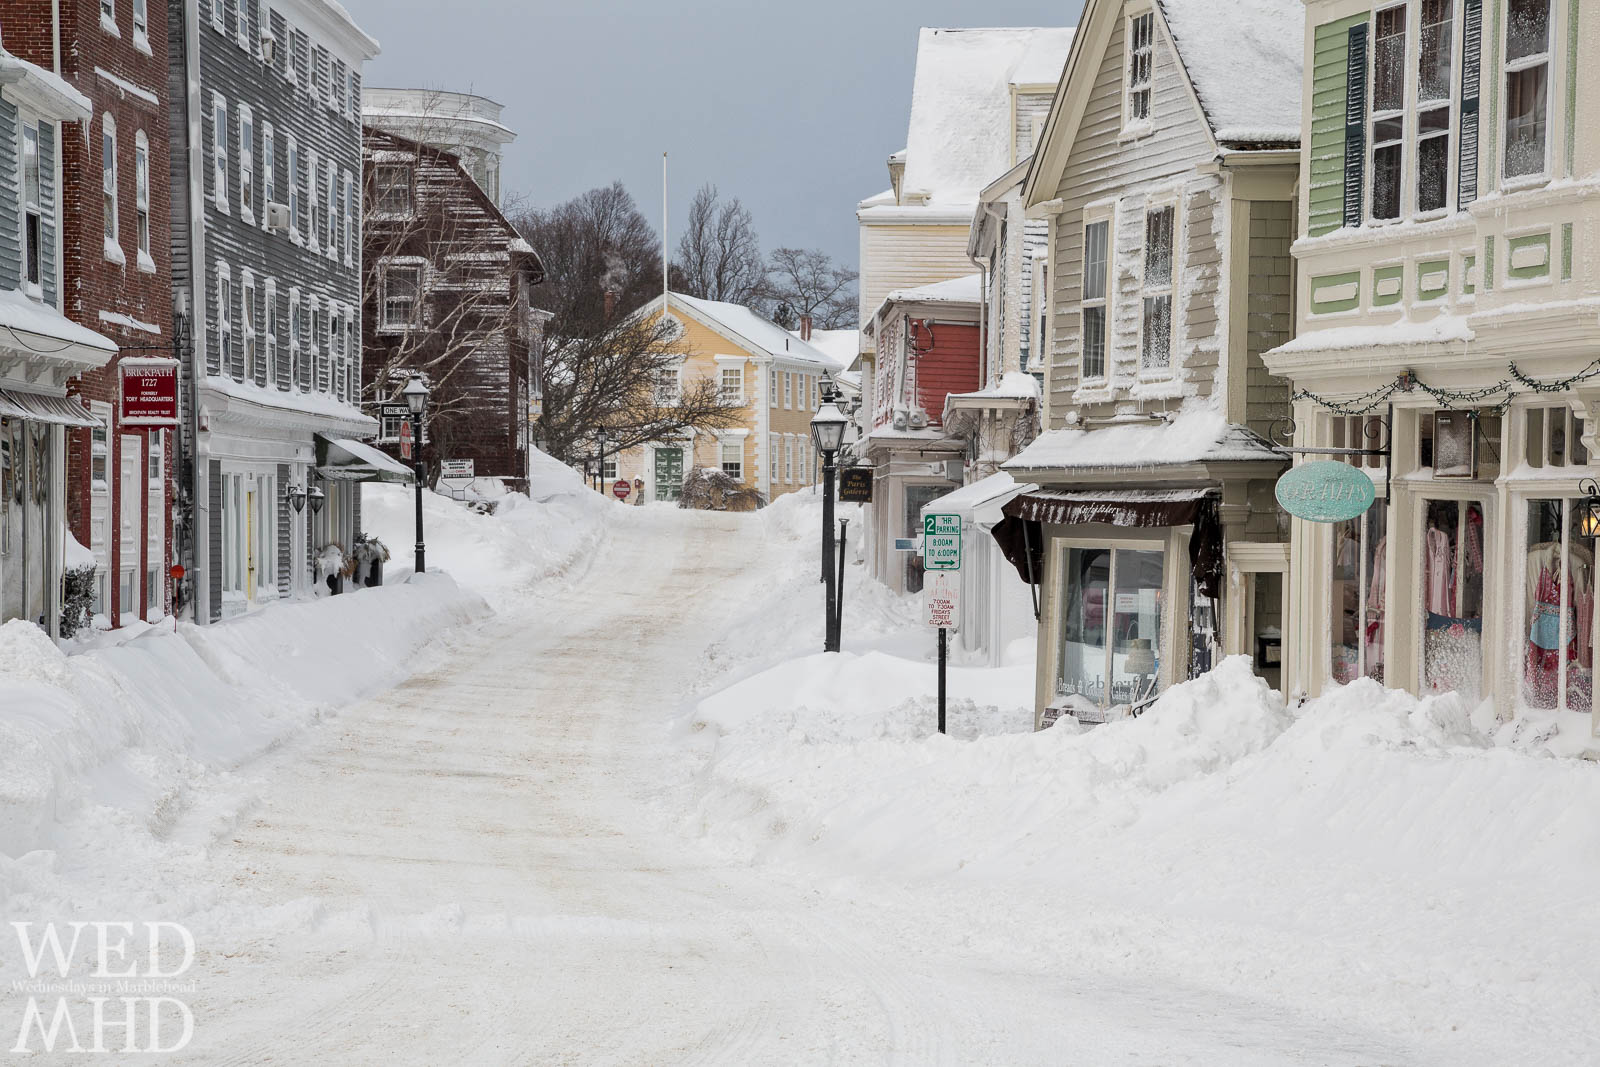 Freshly fallen snow forms a white blanket over the streets of Historic Downtown Marblehead after a February blizzard